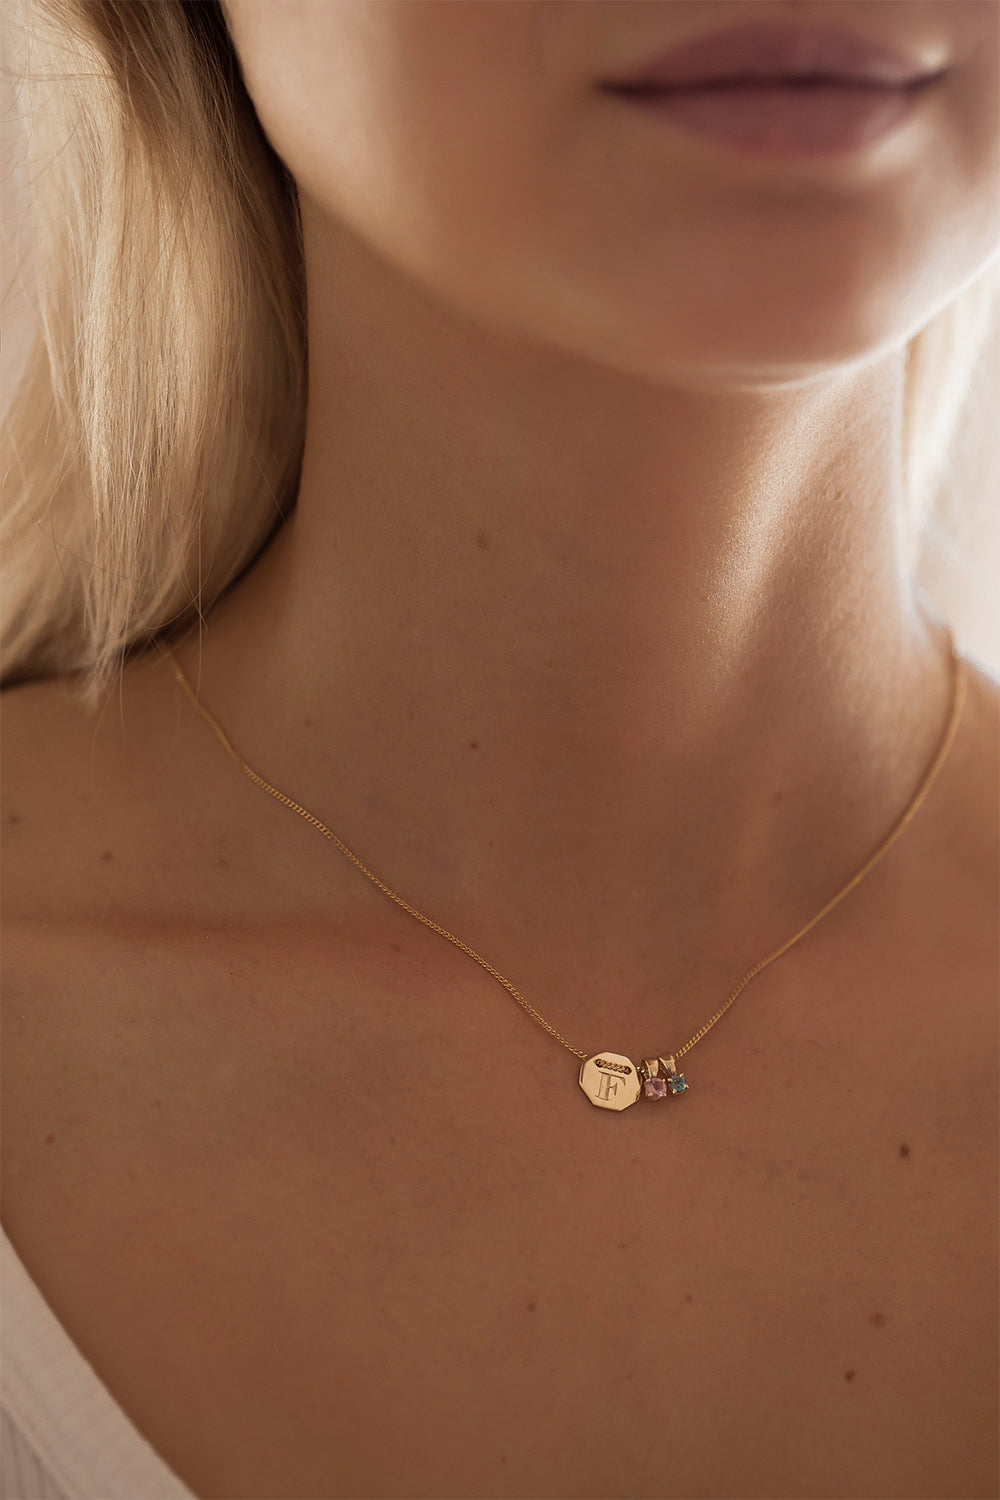 Birthstone Necklaces | 9K Yellow Gold